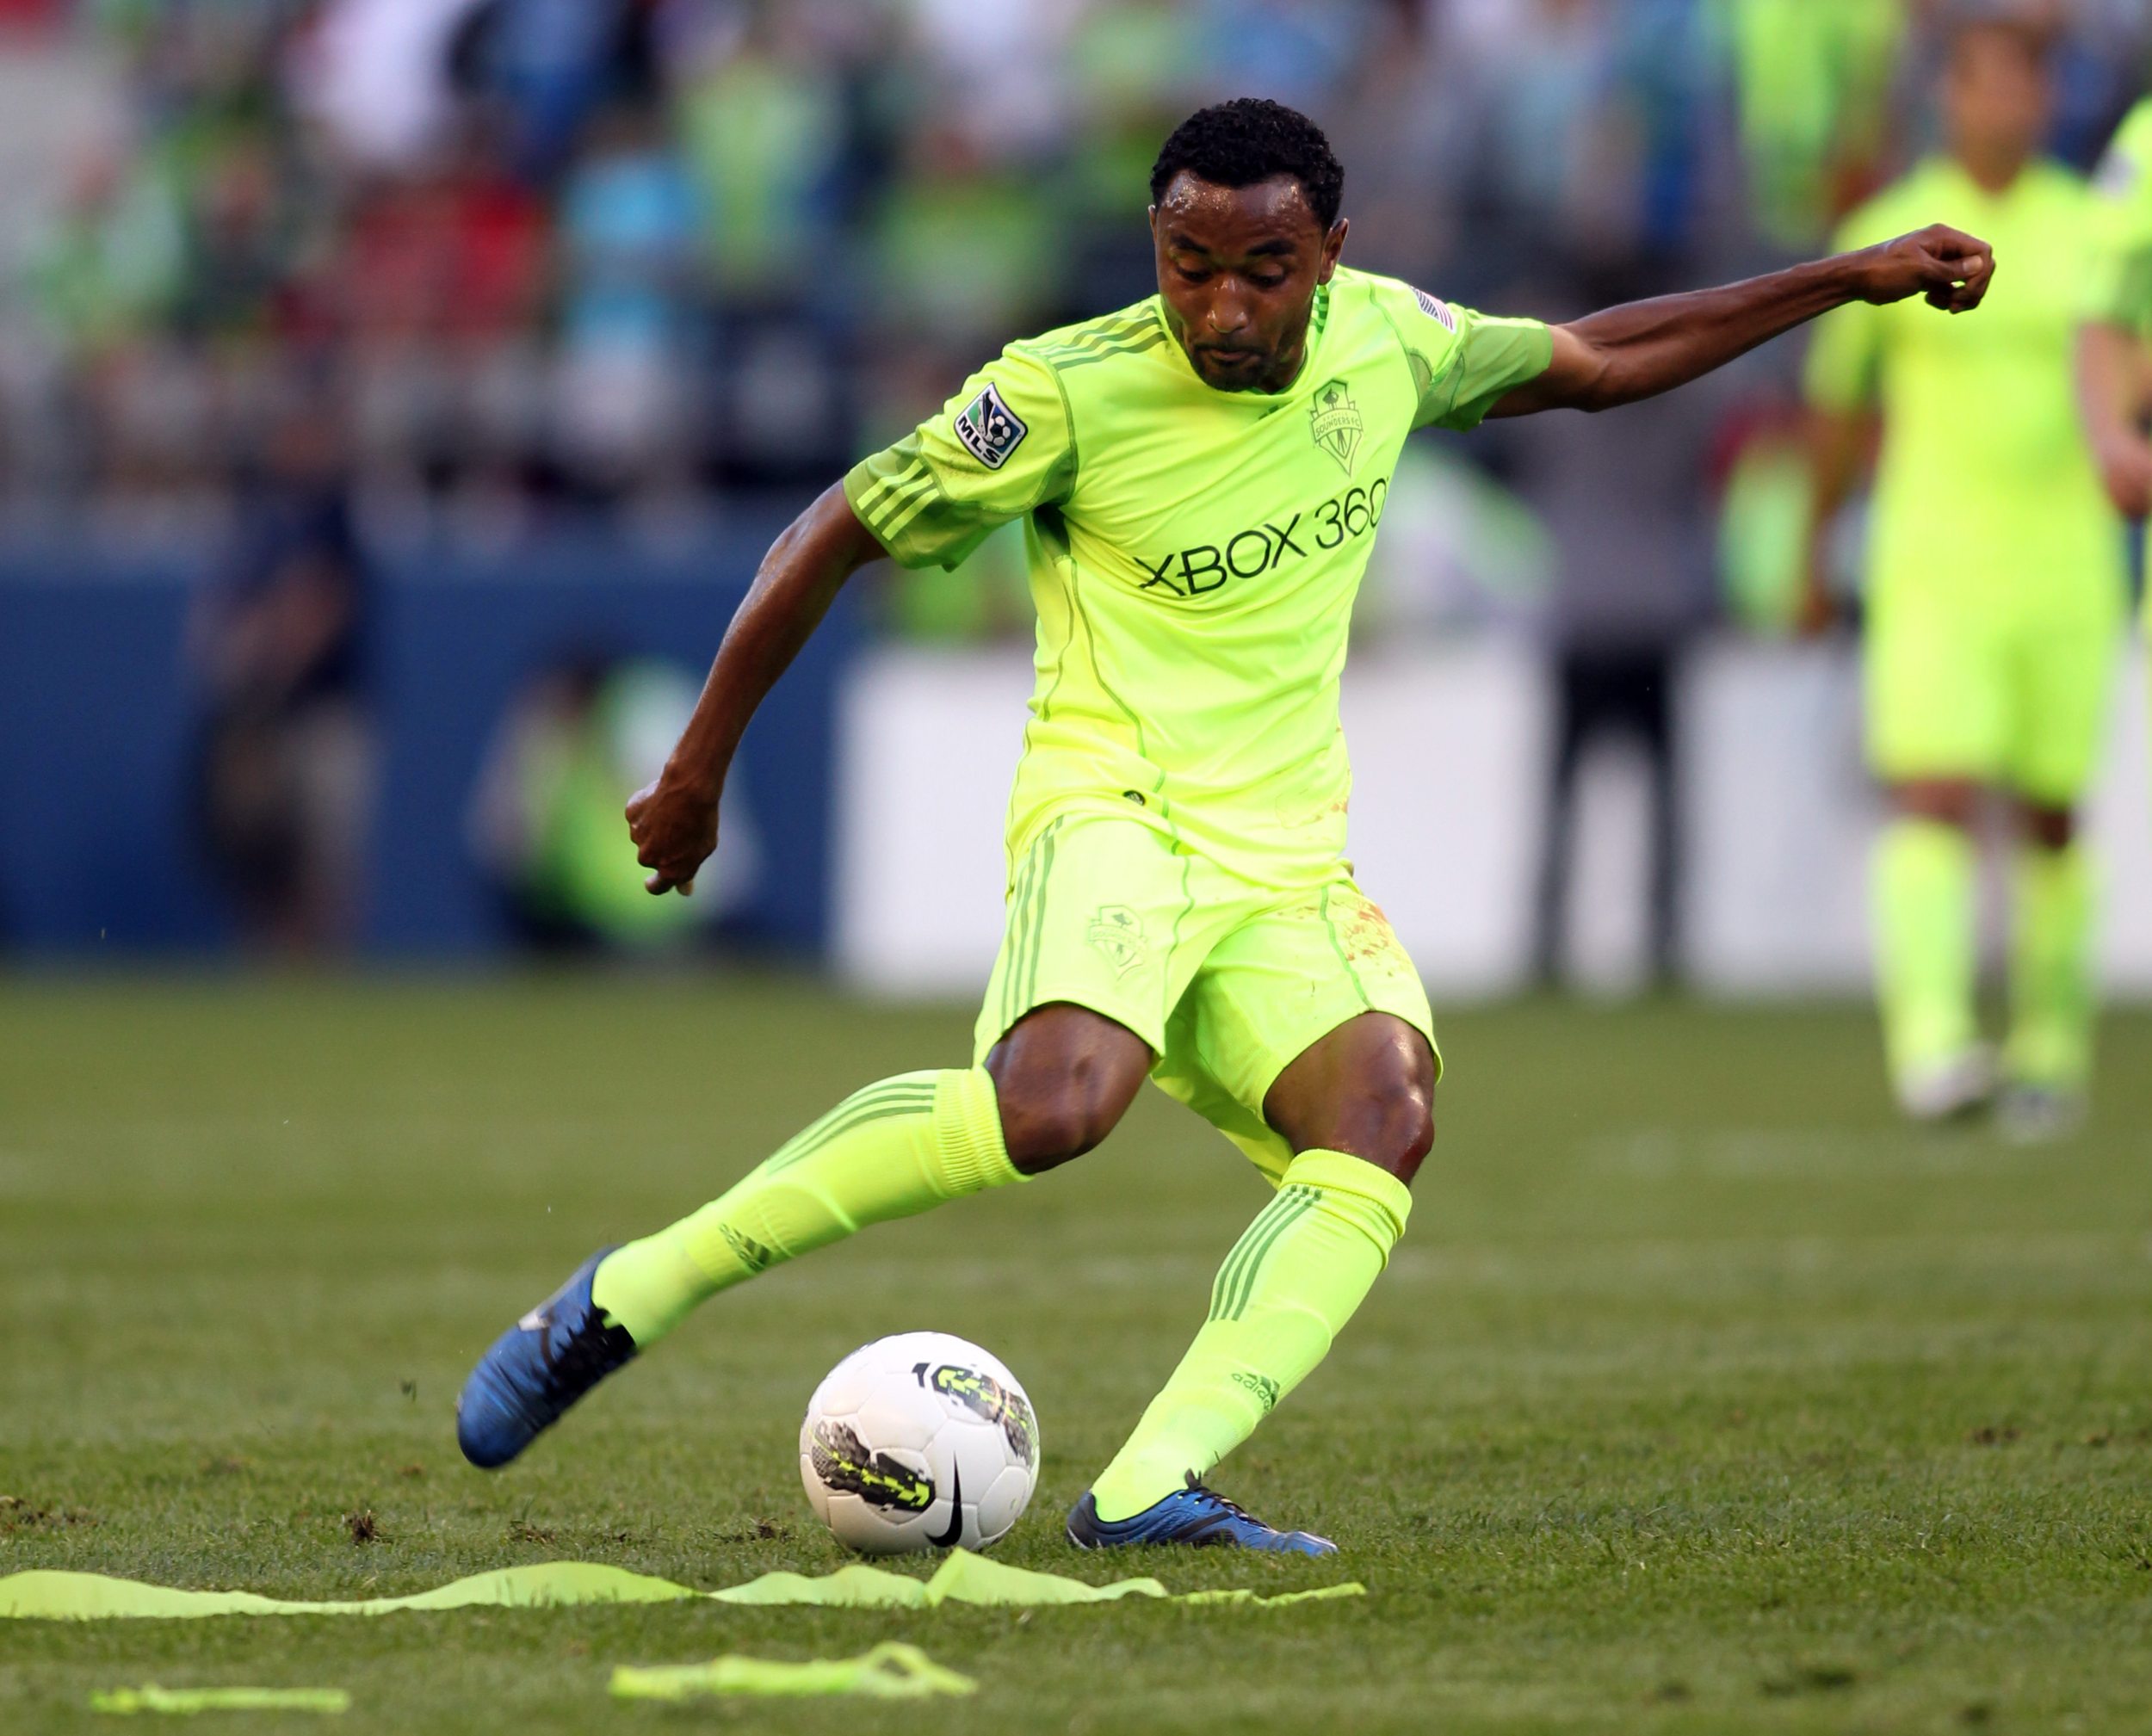 JAMES RILEY - SEATTLE SOUNDERS 2.png